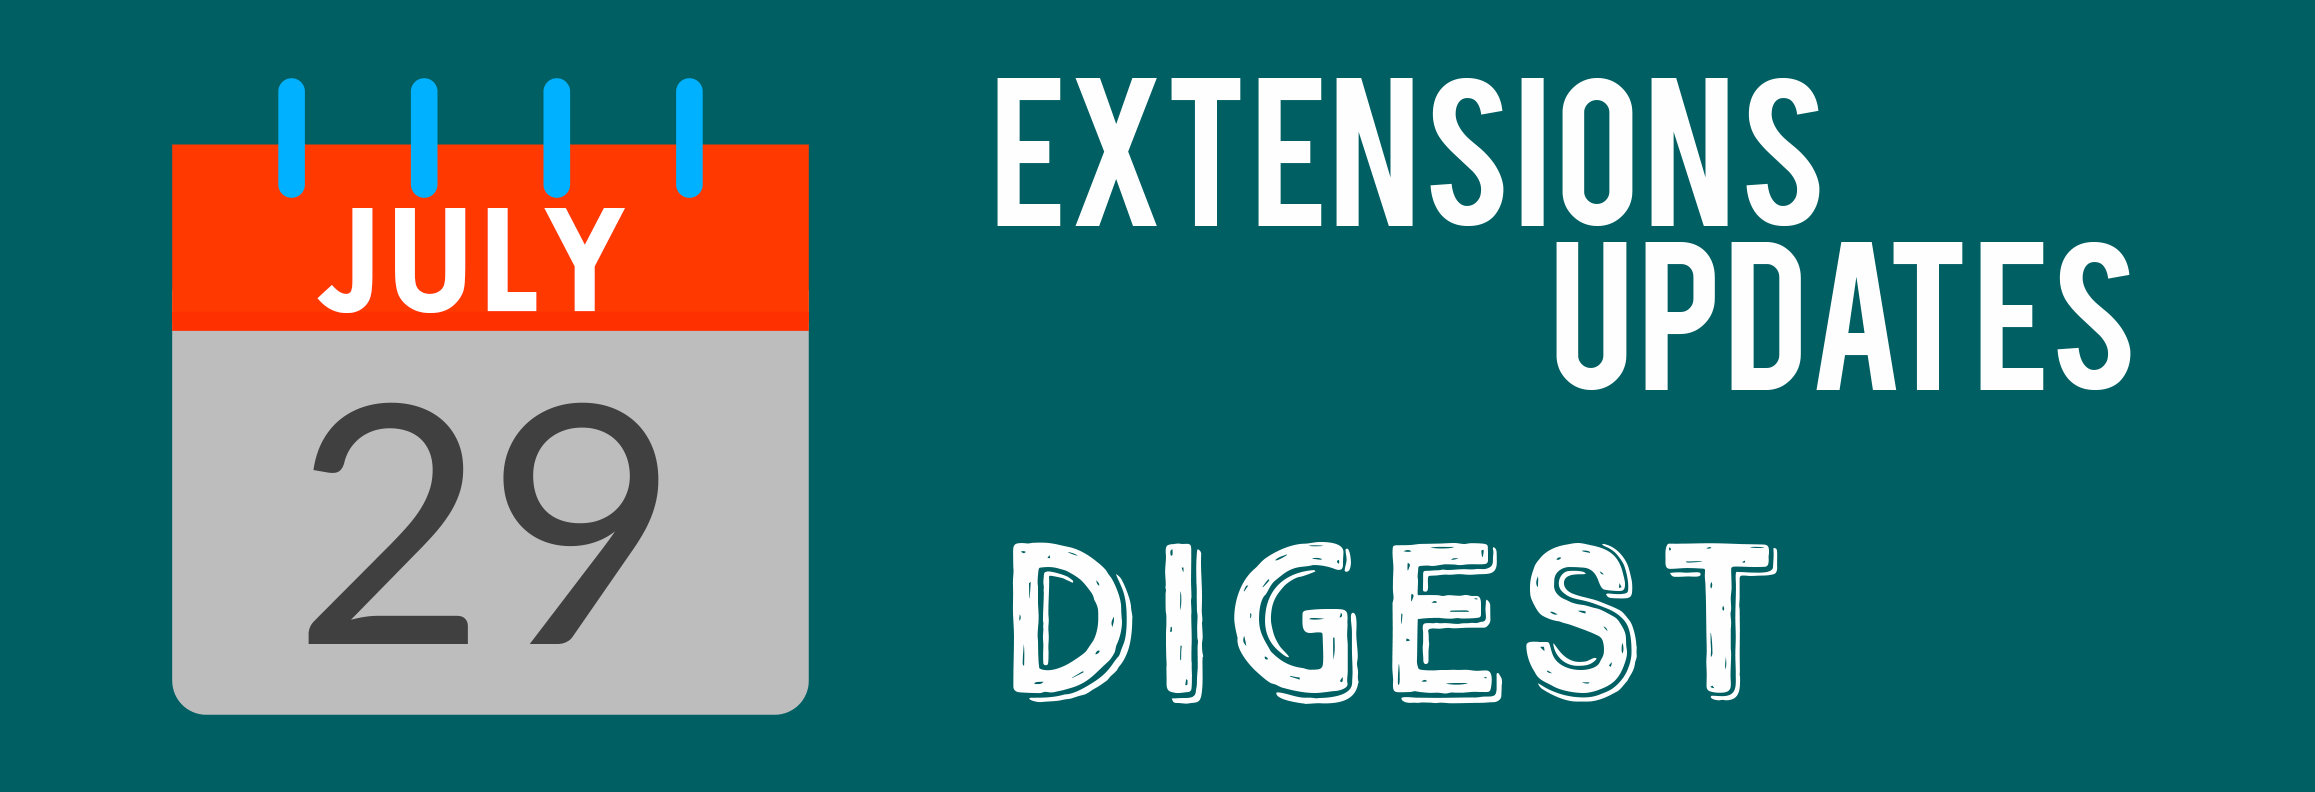 Mirasvit Extensions Update Digest July